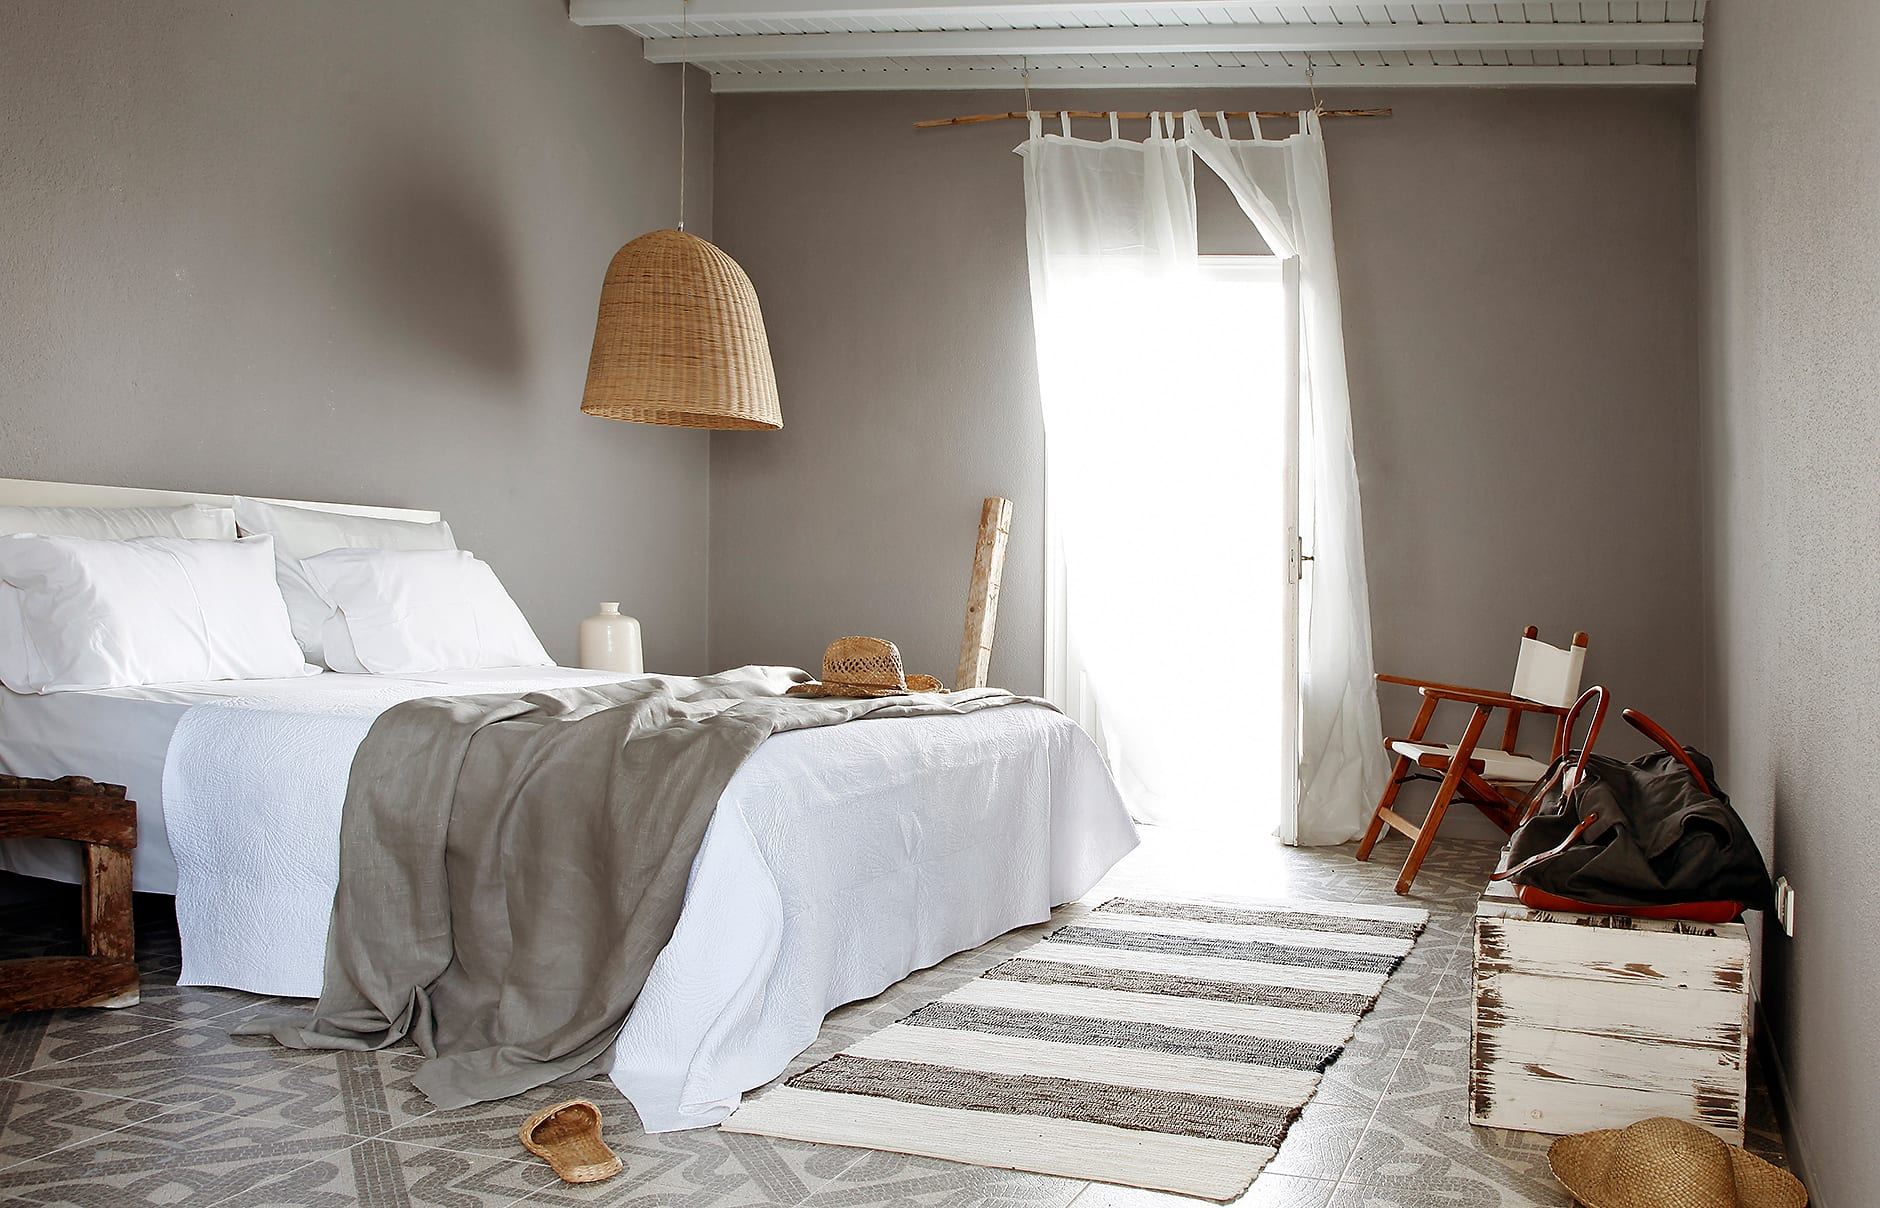 Bedroom. San Giorgio Mykonos a Design Hotels™ Project, Greece. © SAN GIORGIO